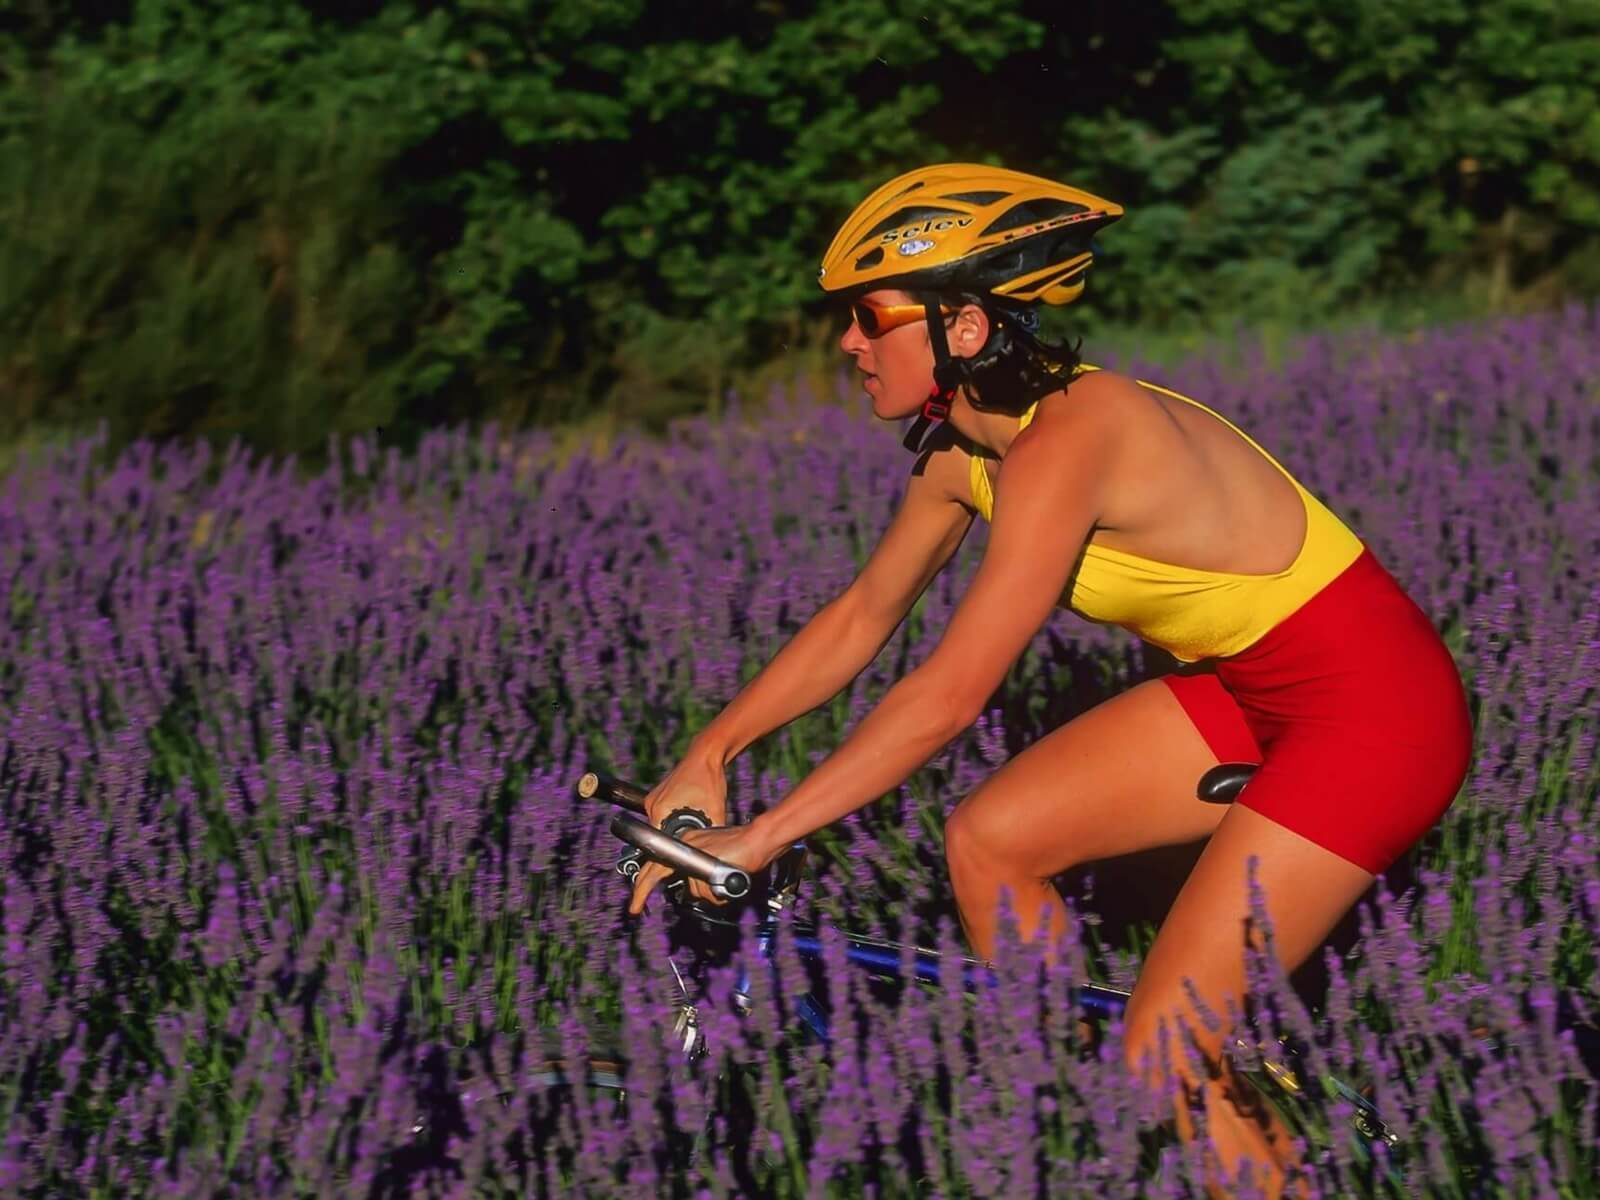 woman riding in the french countryside among lavender fields